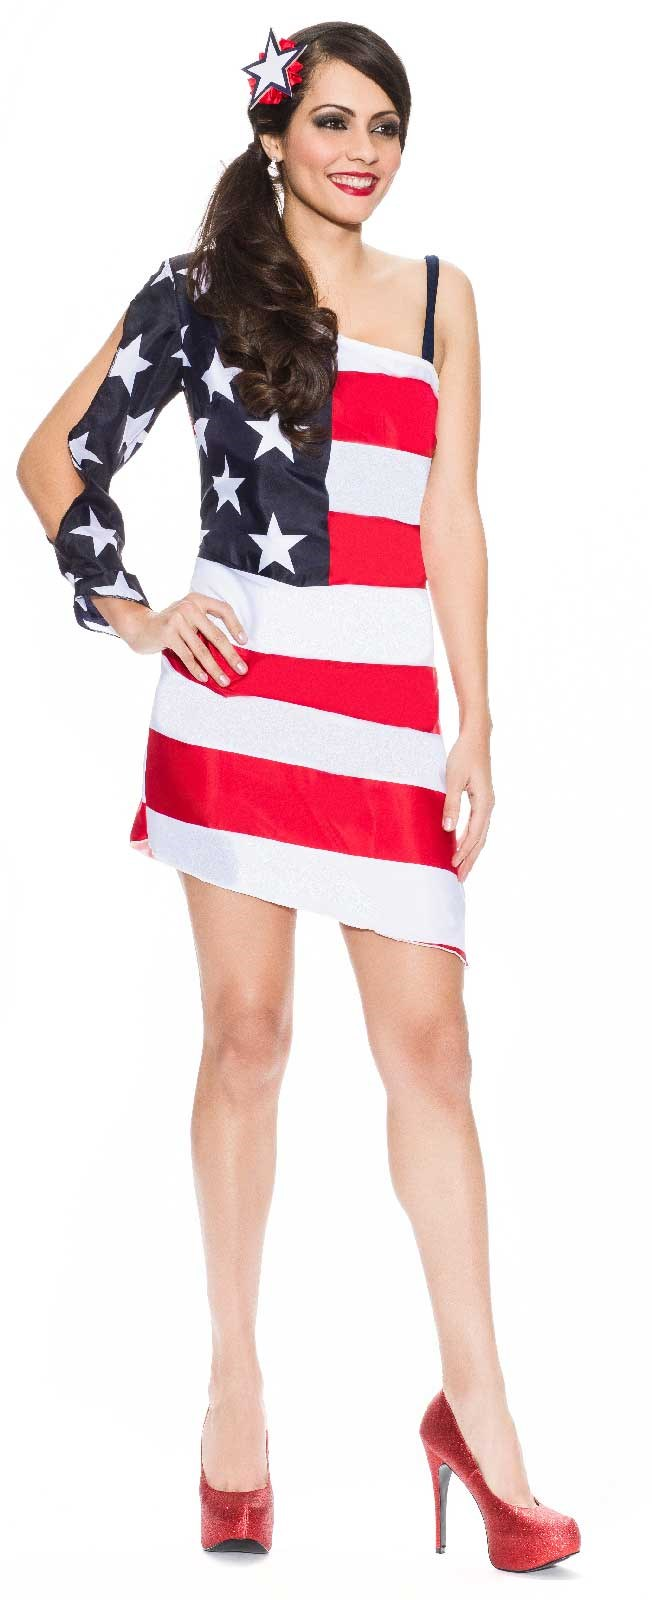 Image of 4th of July Star Spangled Sweetie Womens Costume